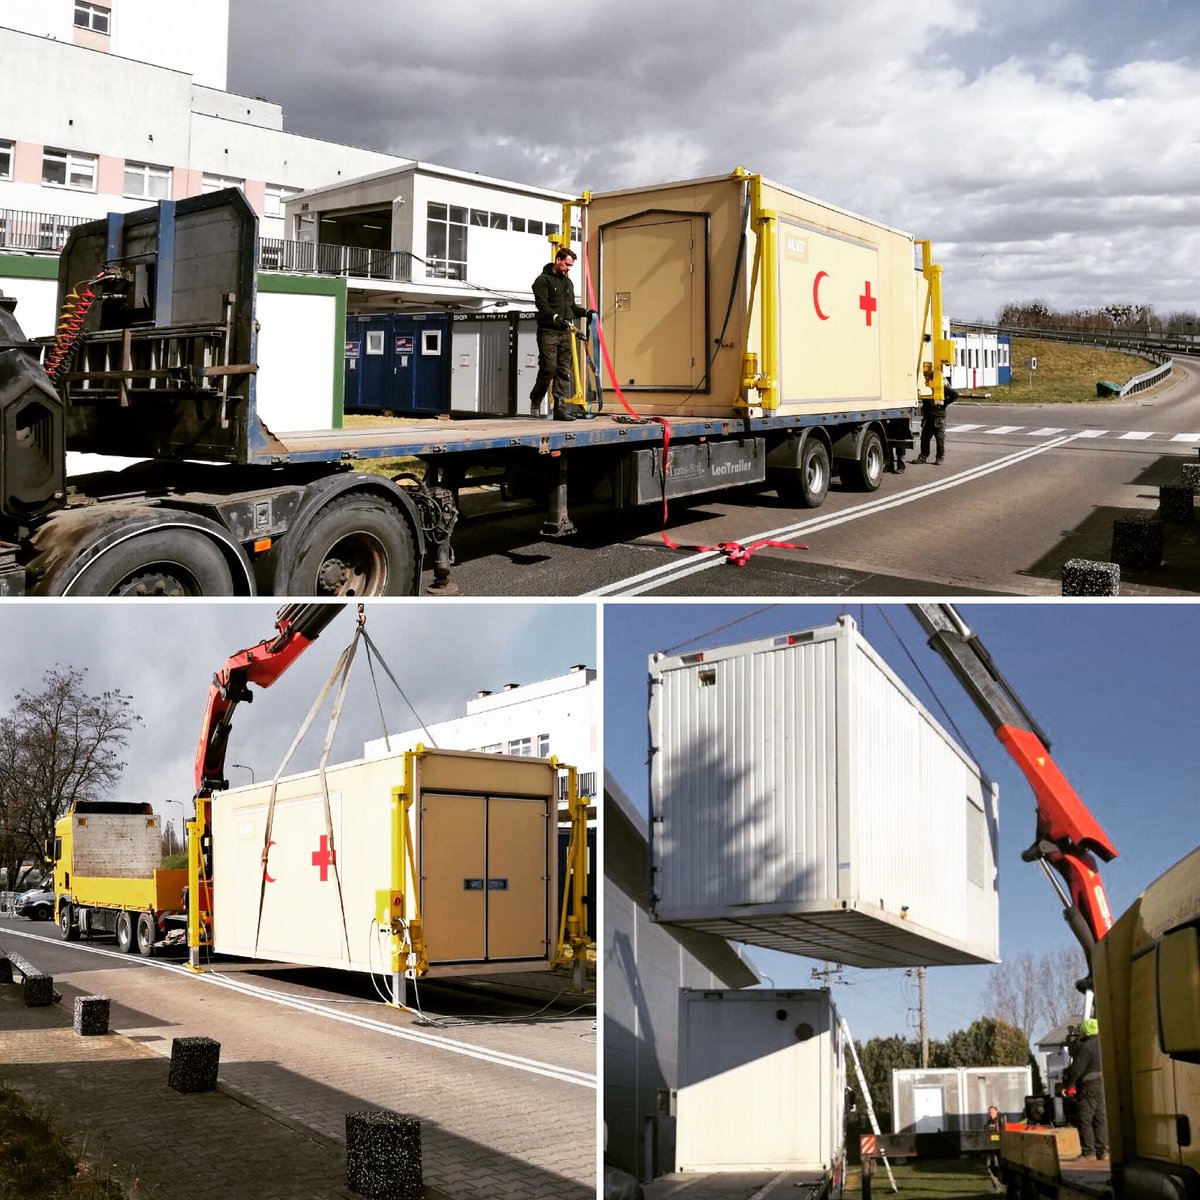 Delivering ALVO Mobile Hospital solutions • rapid deployment in tough pandemic conditions #emergency #emergencia #hospitalesdecampaña #fieldmedicine #covid_19 #mobilehospitals #wedoitforpatients #fightcovid19 #fightcoronavirus💪 #coronavirus #covid19 #covidhospital #doctor https://t.co/RbvCt5nsGS